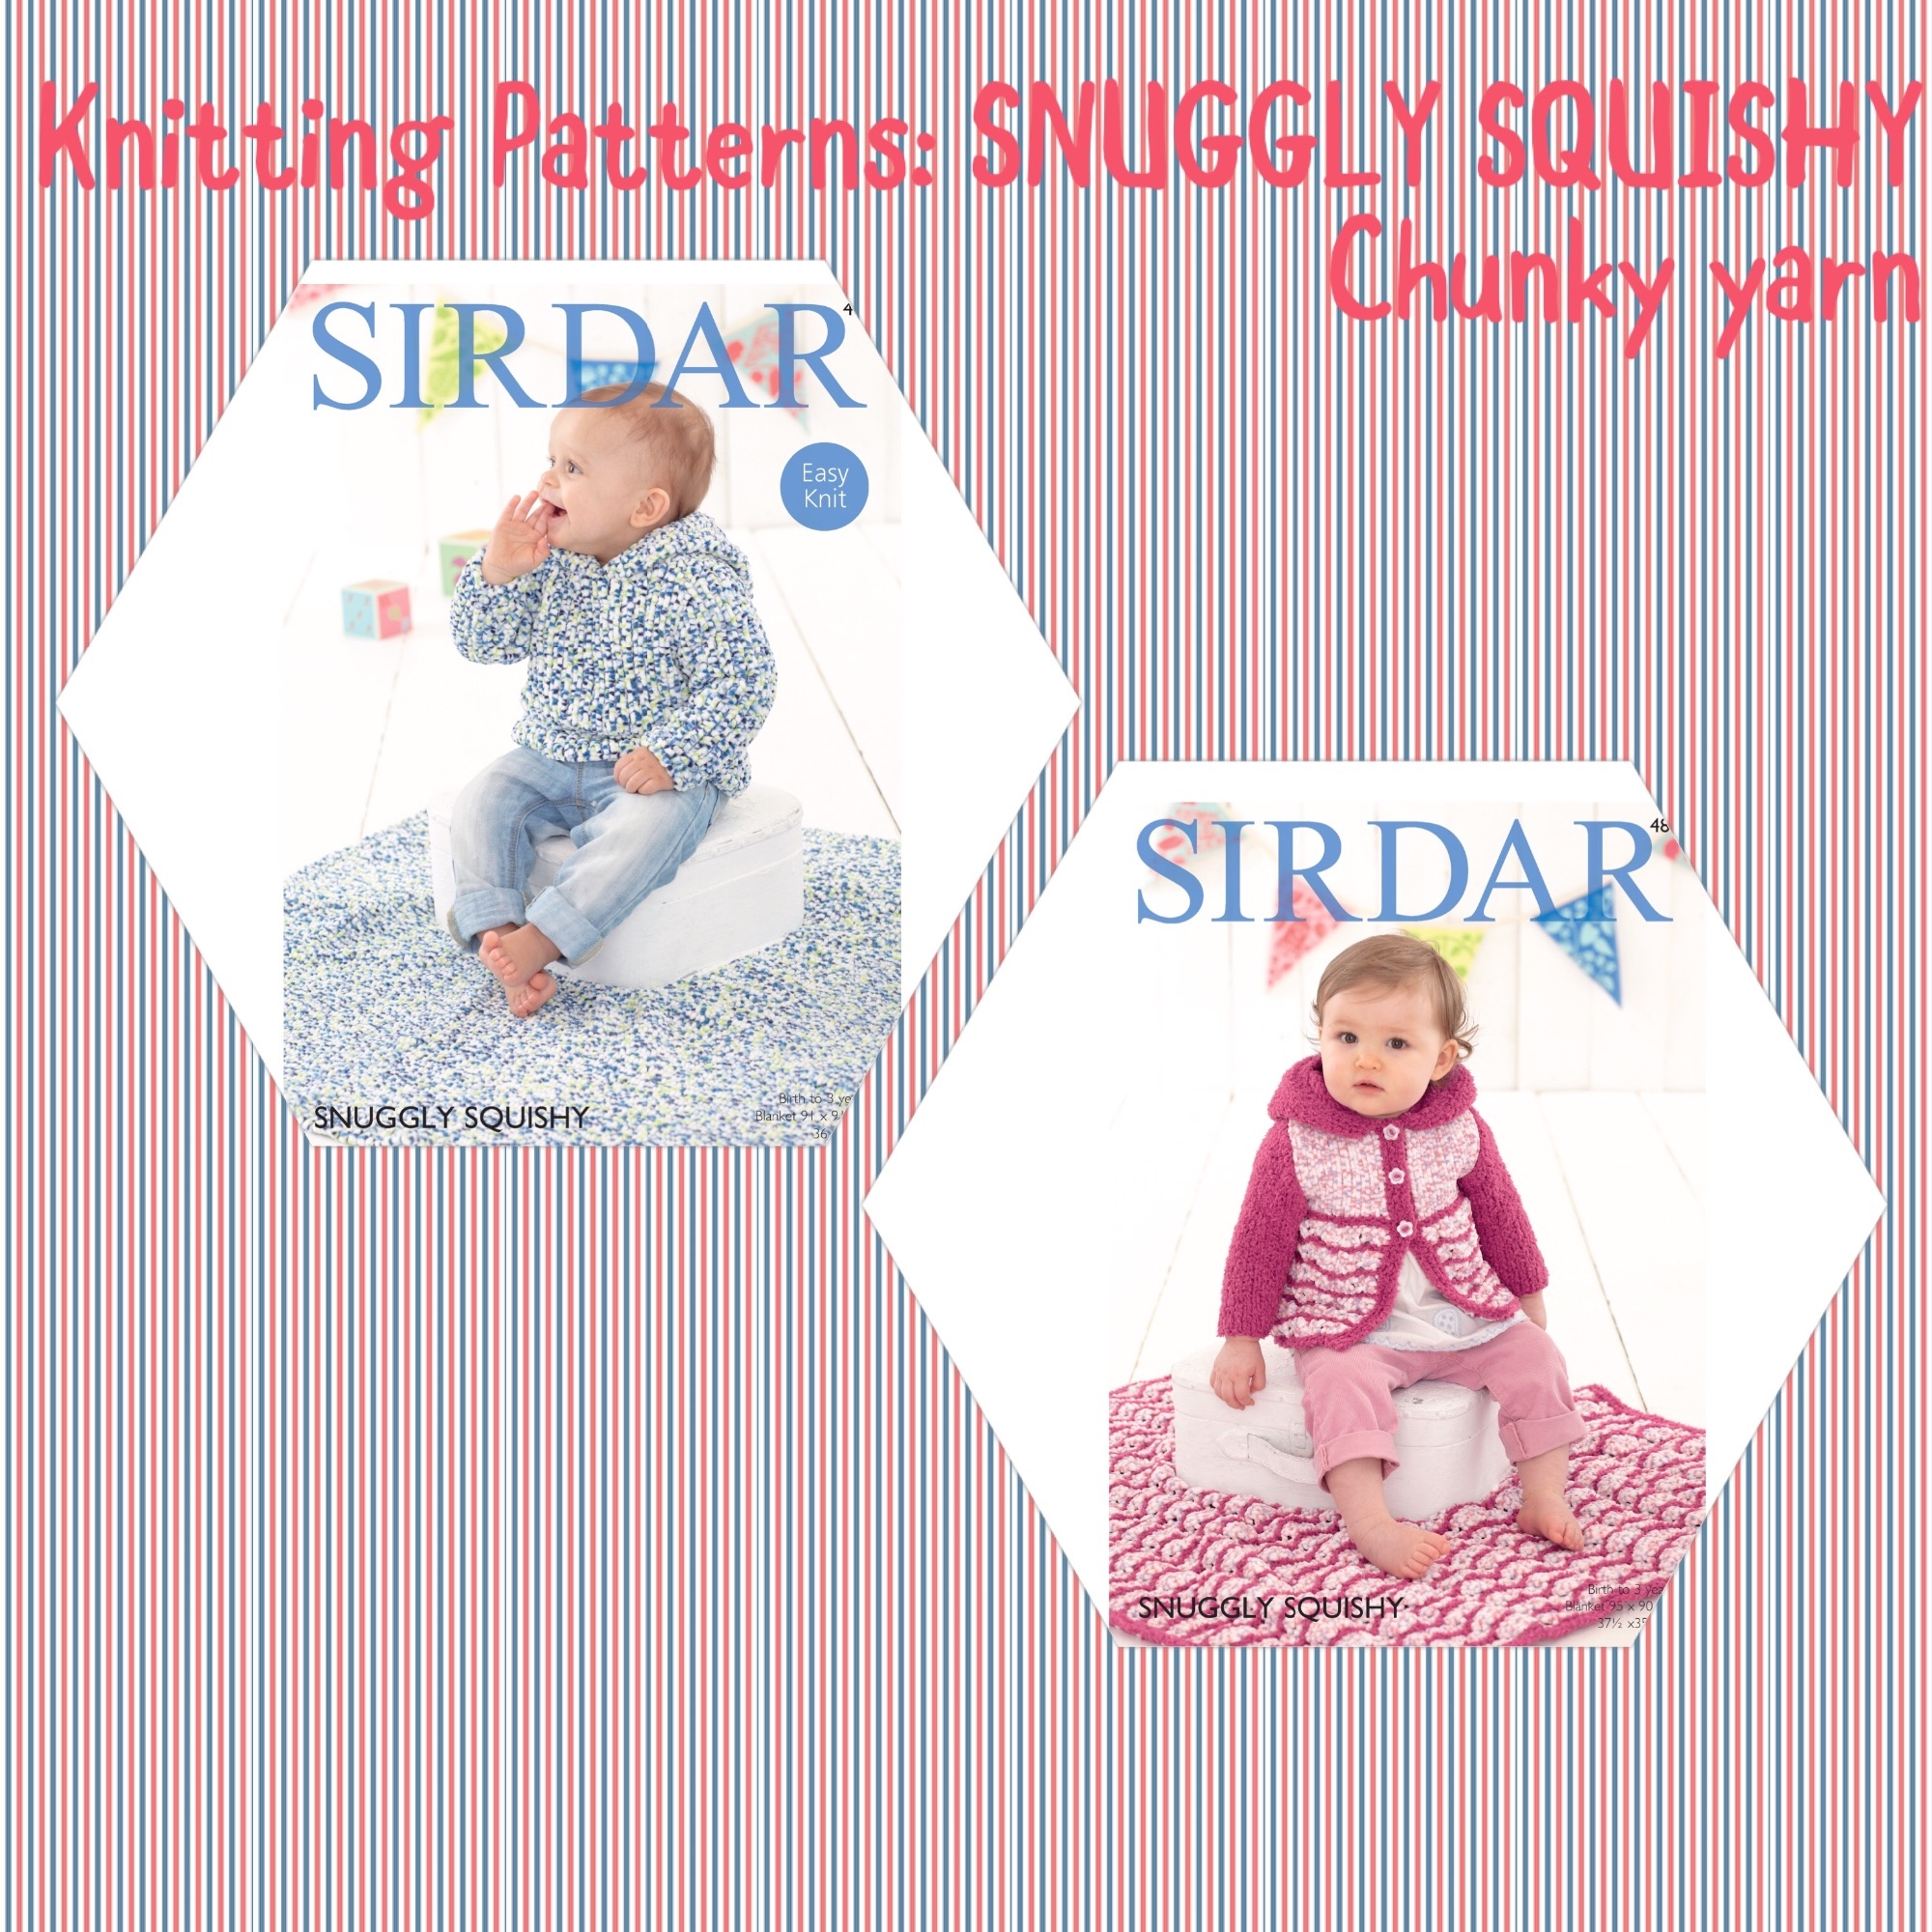 Sirdar snuggly squishy knitting baby patterns cardigan blanket